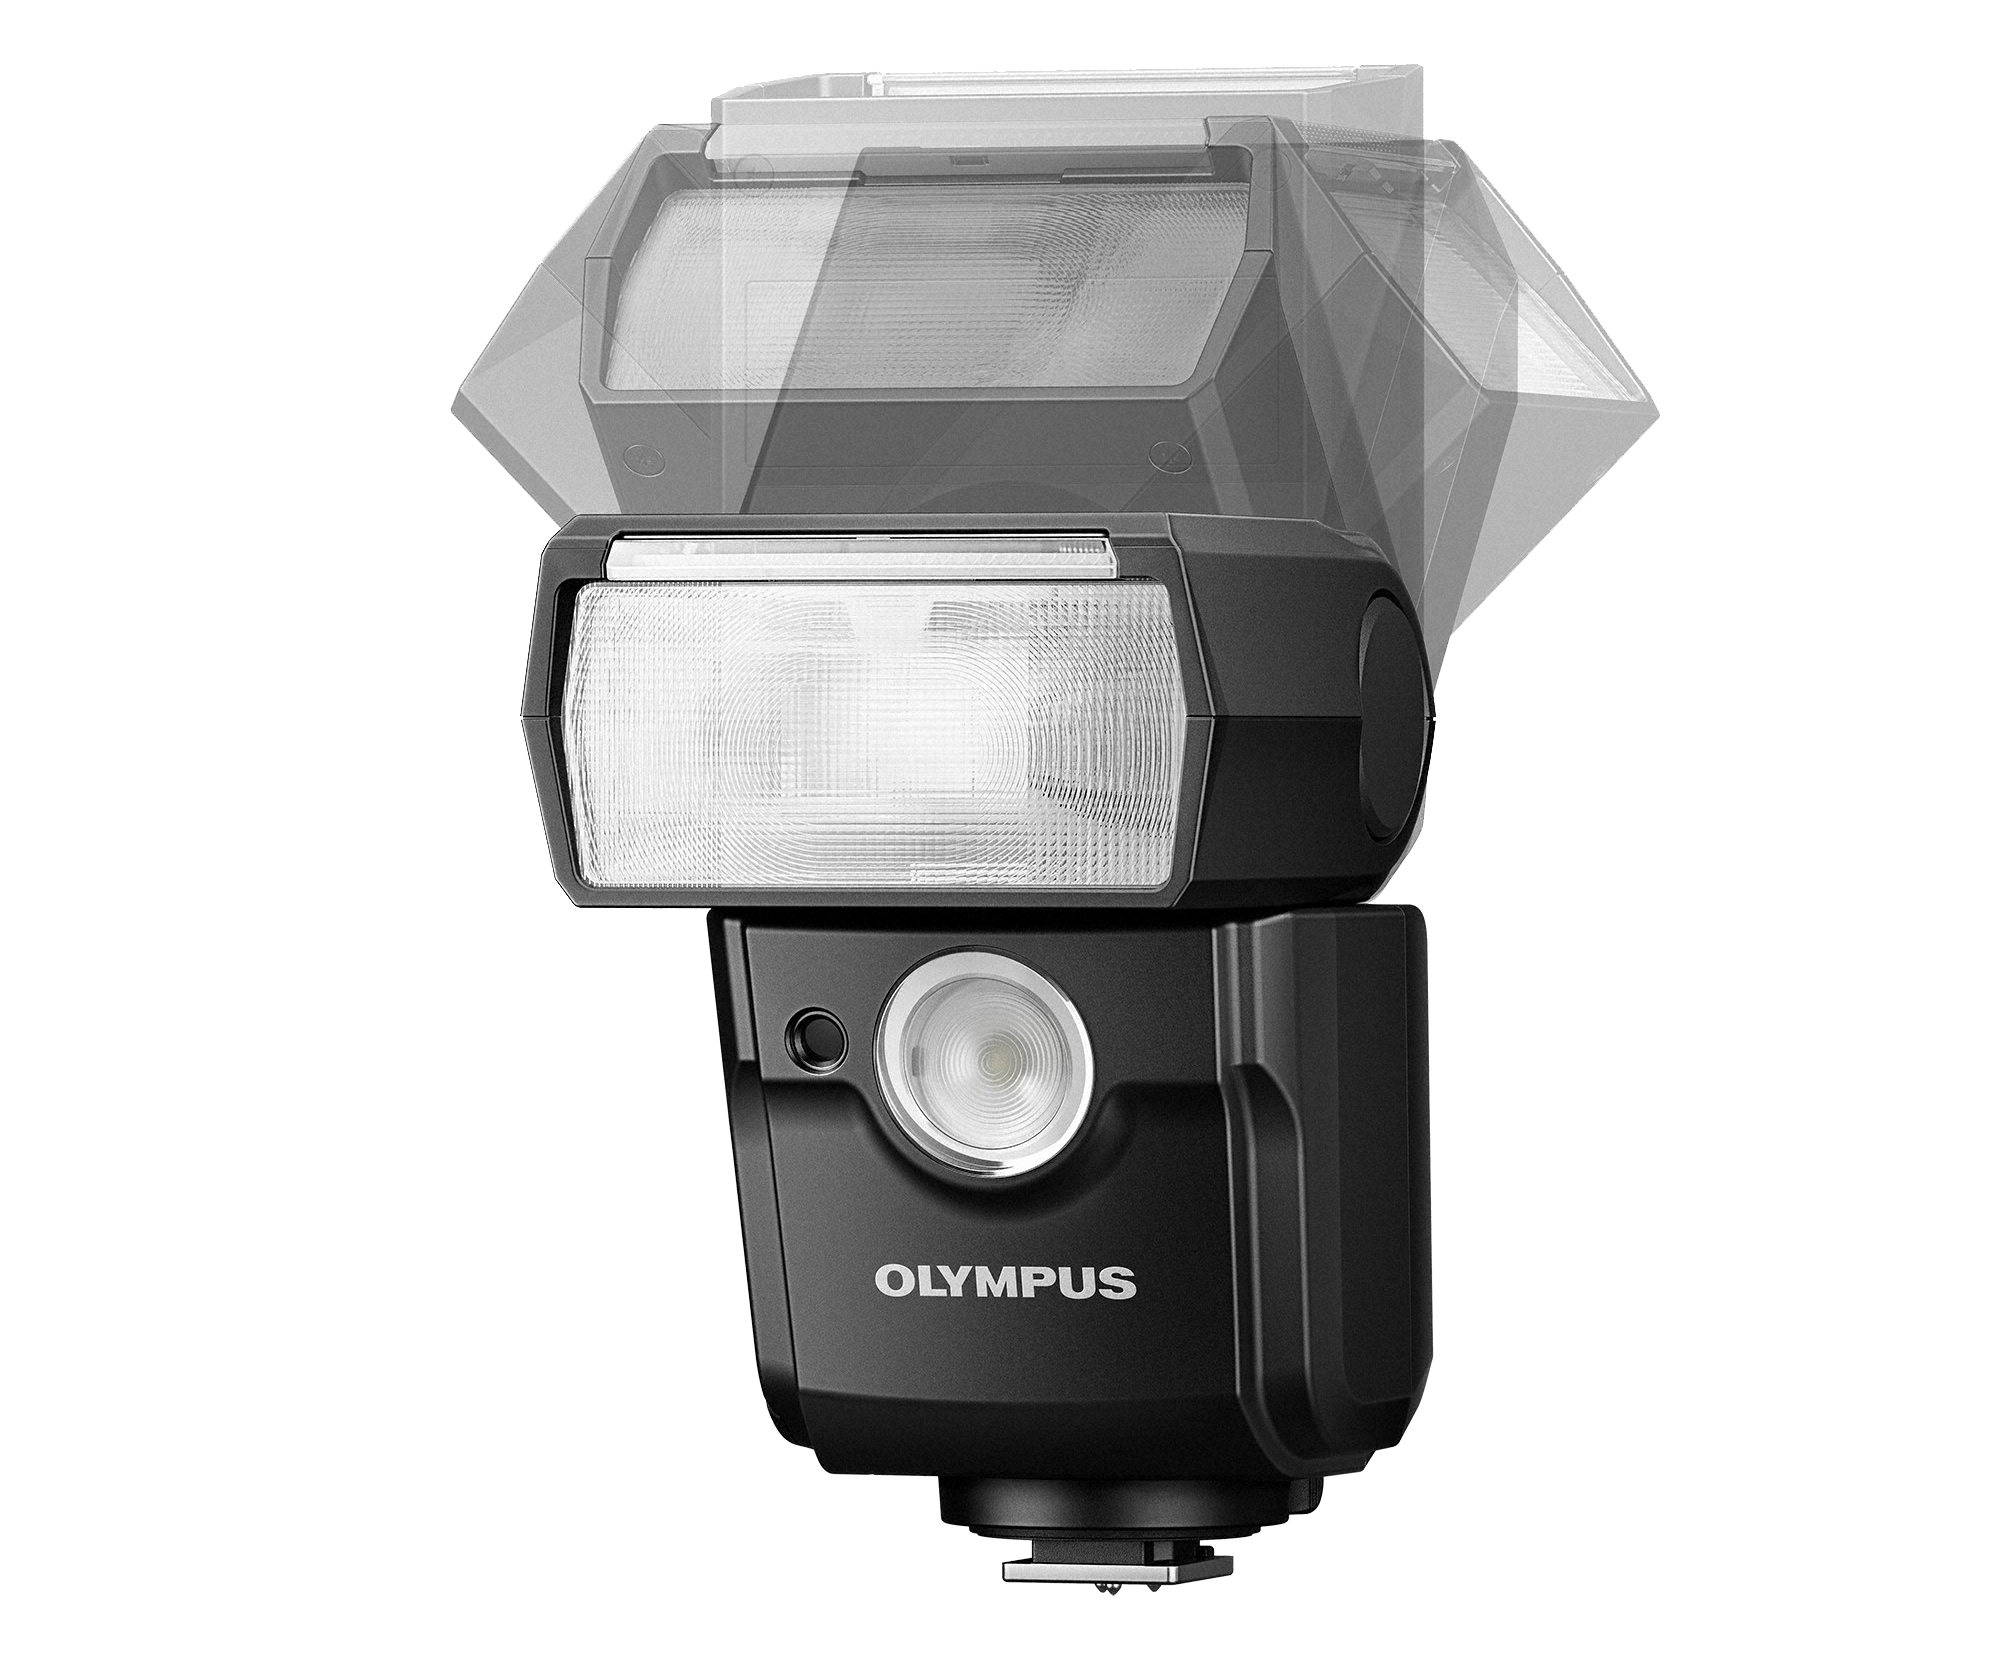 Olympus FL-700WR Flashgun